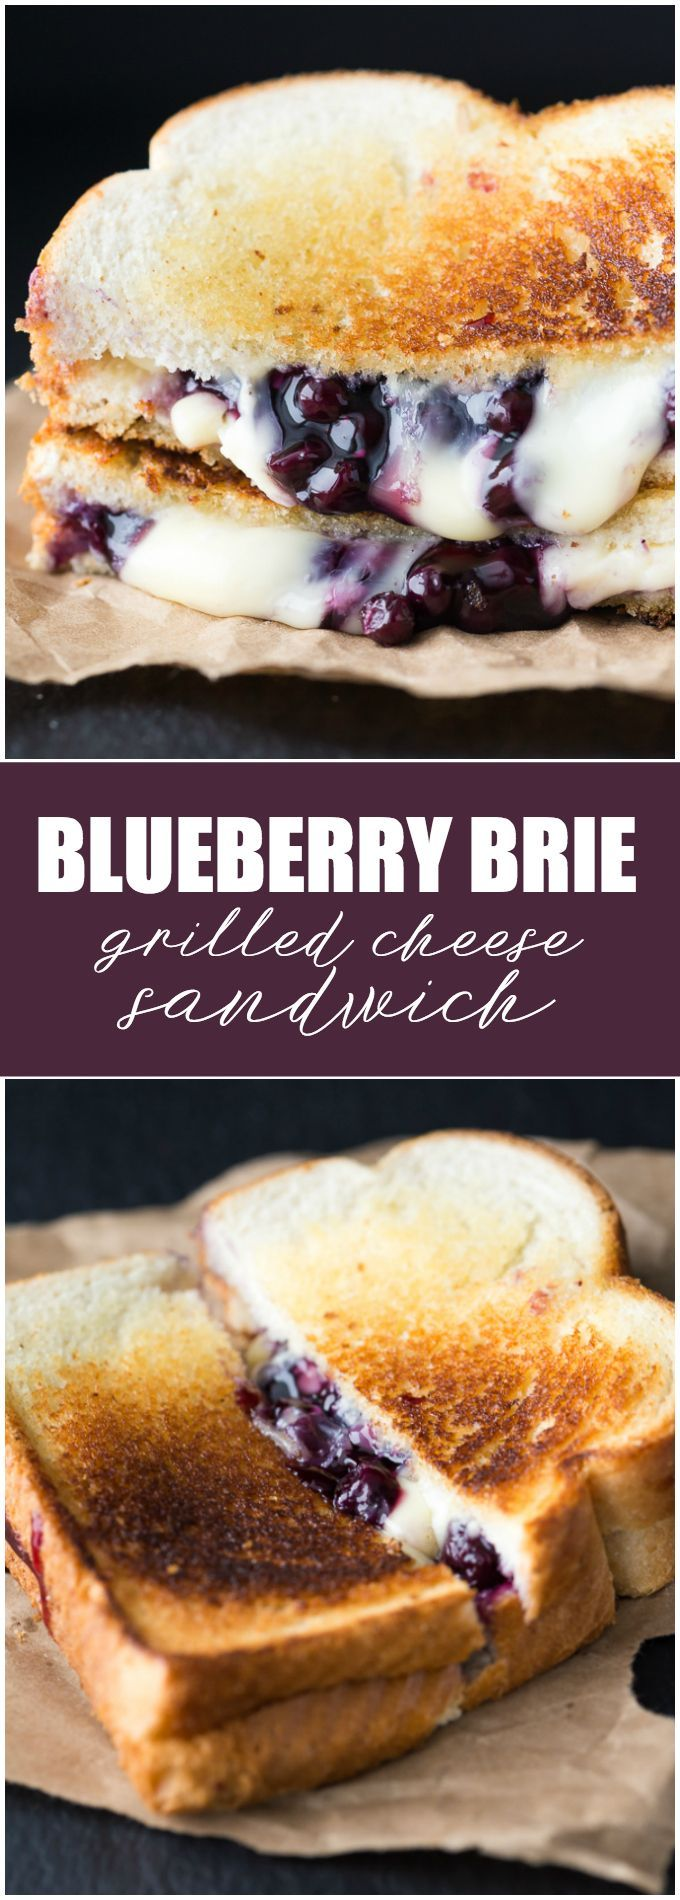 Blueberry Brie Grilled Cheese Sandwich - Yes, lunch can actually be a dessert! Enjoy the decadence. #DempstersHoneyWheat #ad